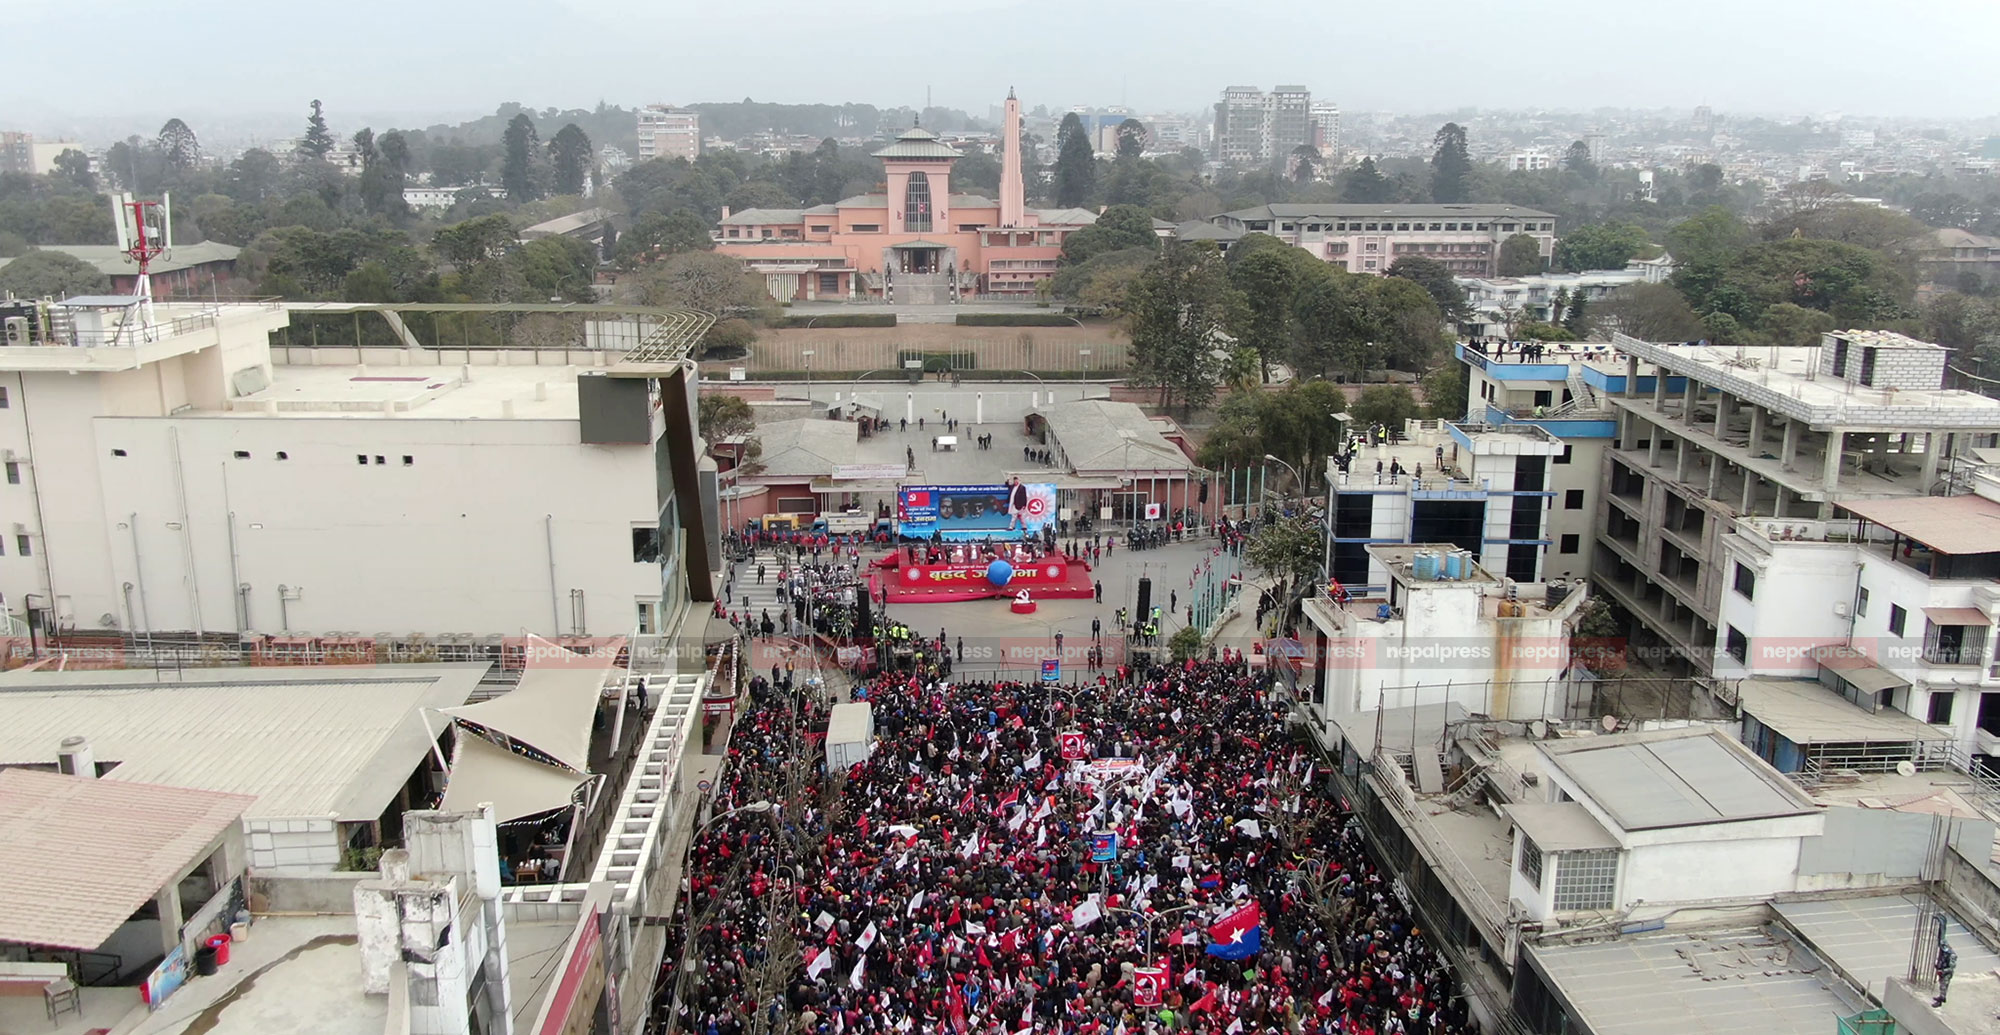 Power demonstration by Oli faction, processions in Kathmandu